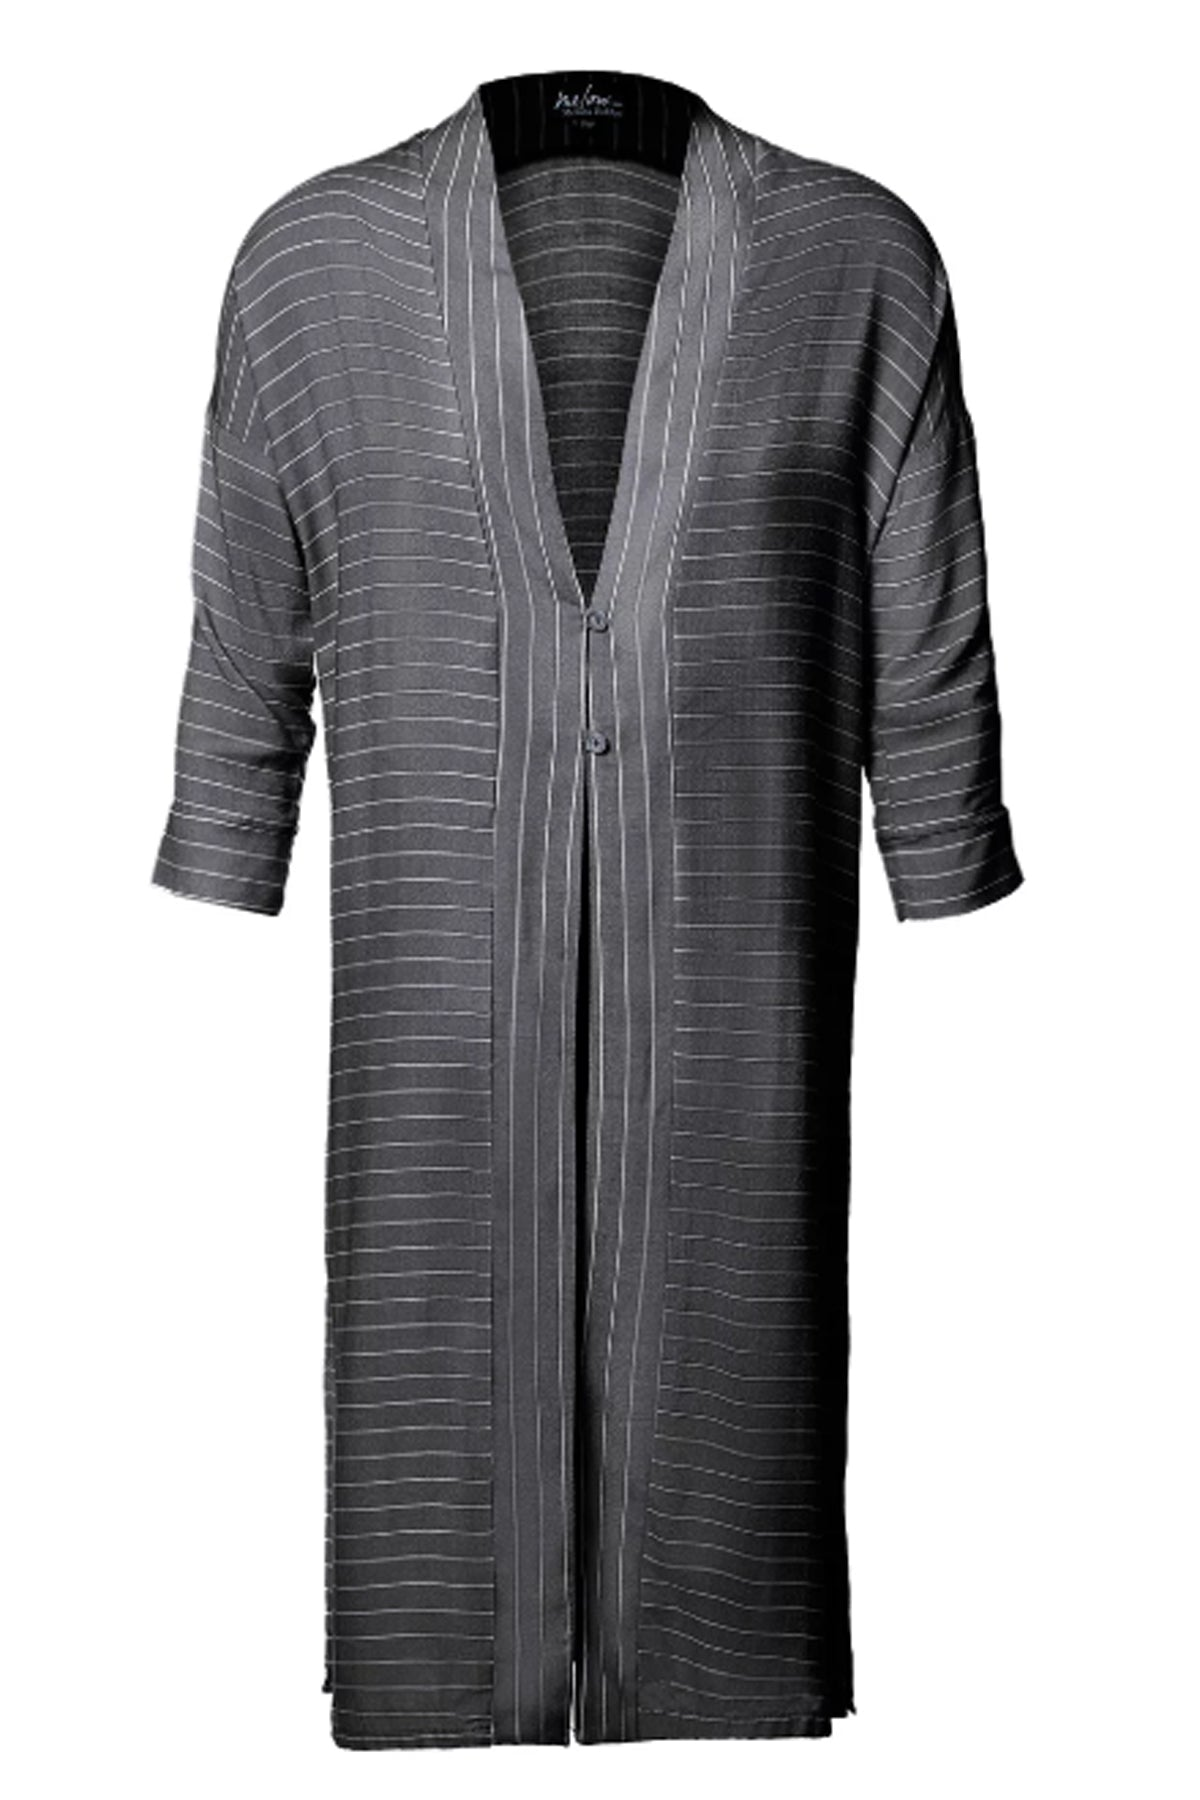 Yan Cardigan by Melow par Melissa Bolduc, long cardigan, two button closure, black stripes, 3/4 sleeves, contrast hem and cuffs, sizes XS-XL, made in Quebec